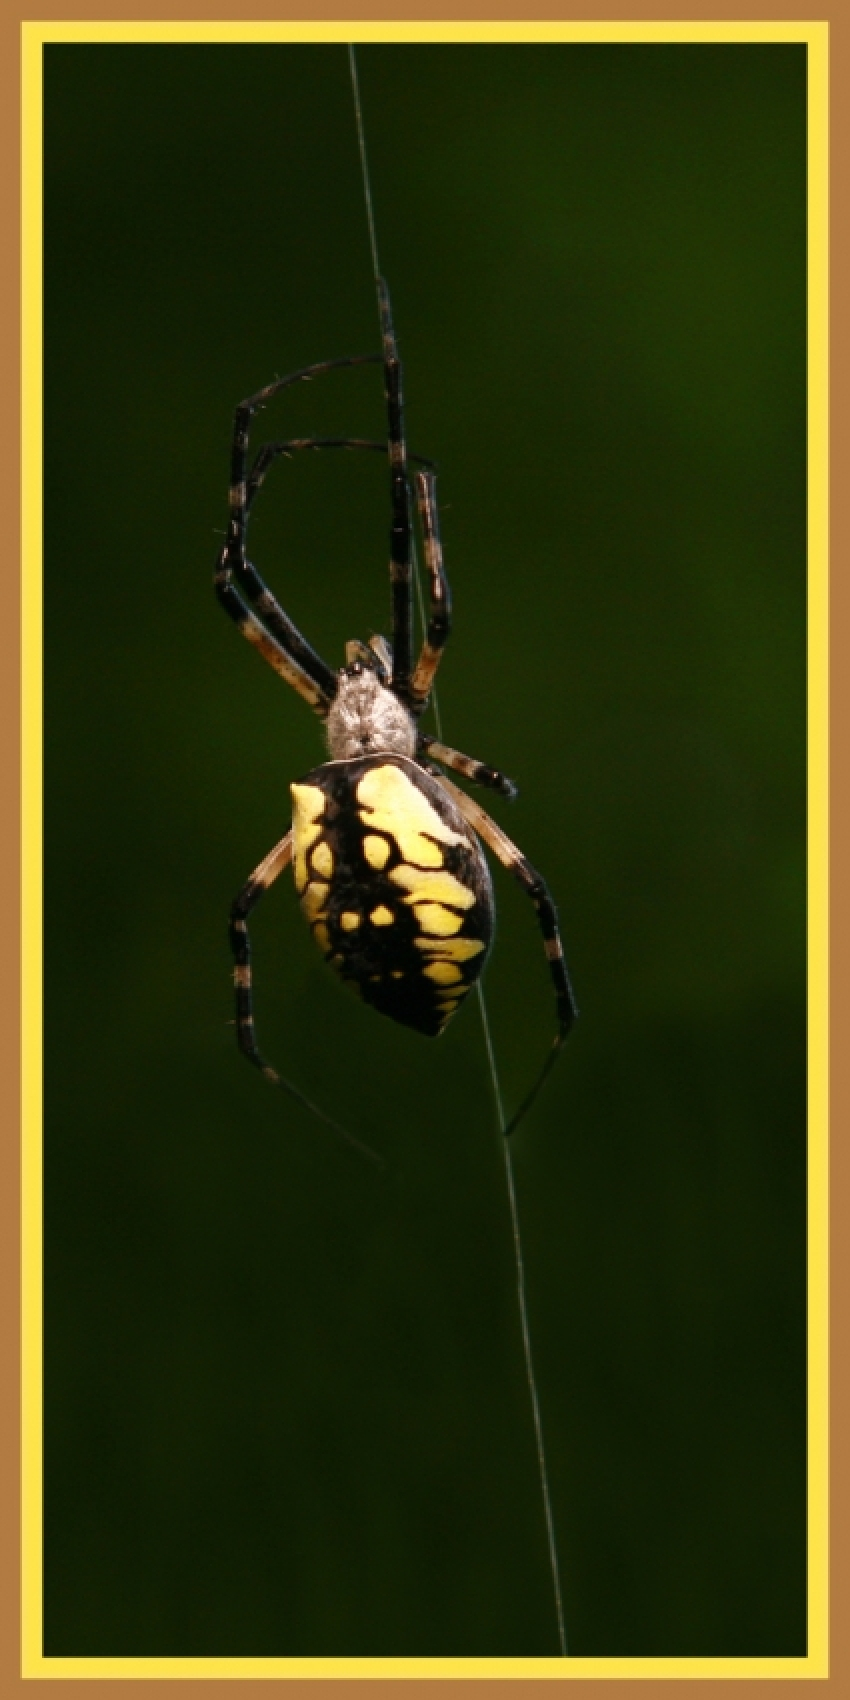 gallery/files-images-IMG_0037_CLIMBING_SPIDER_3x6_copy